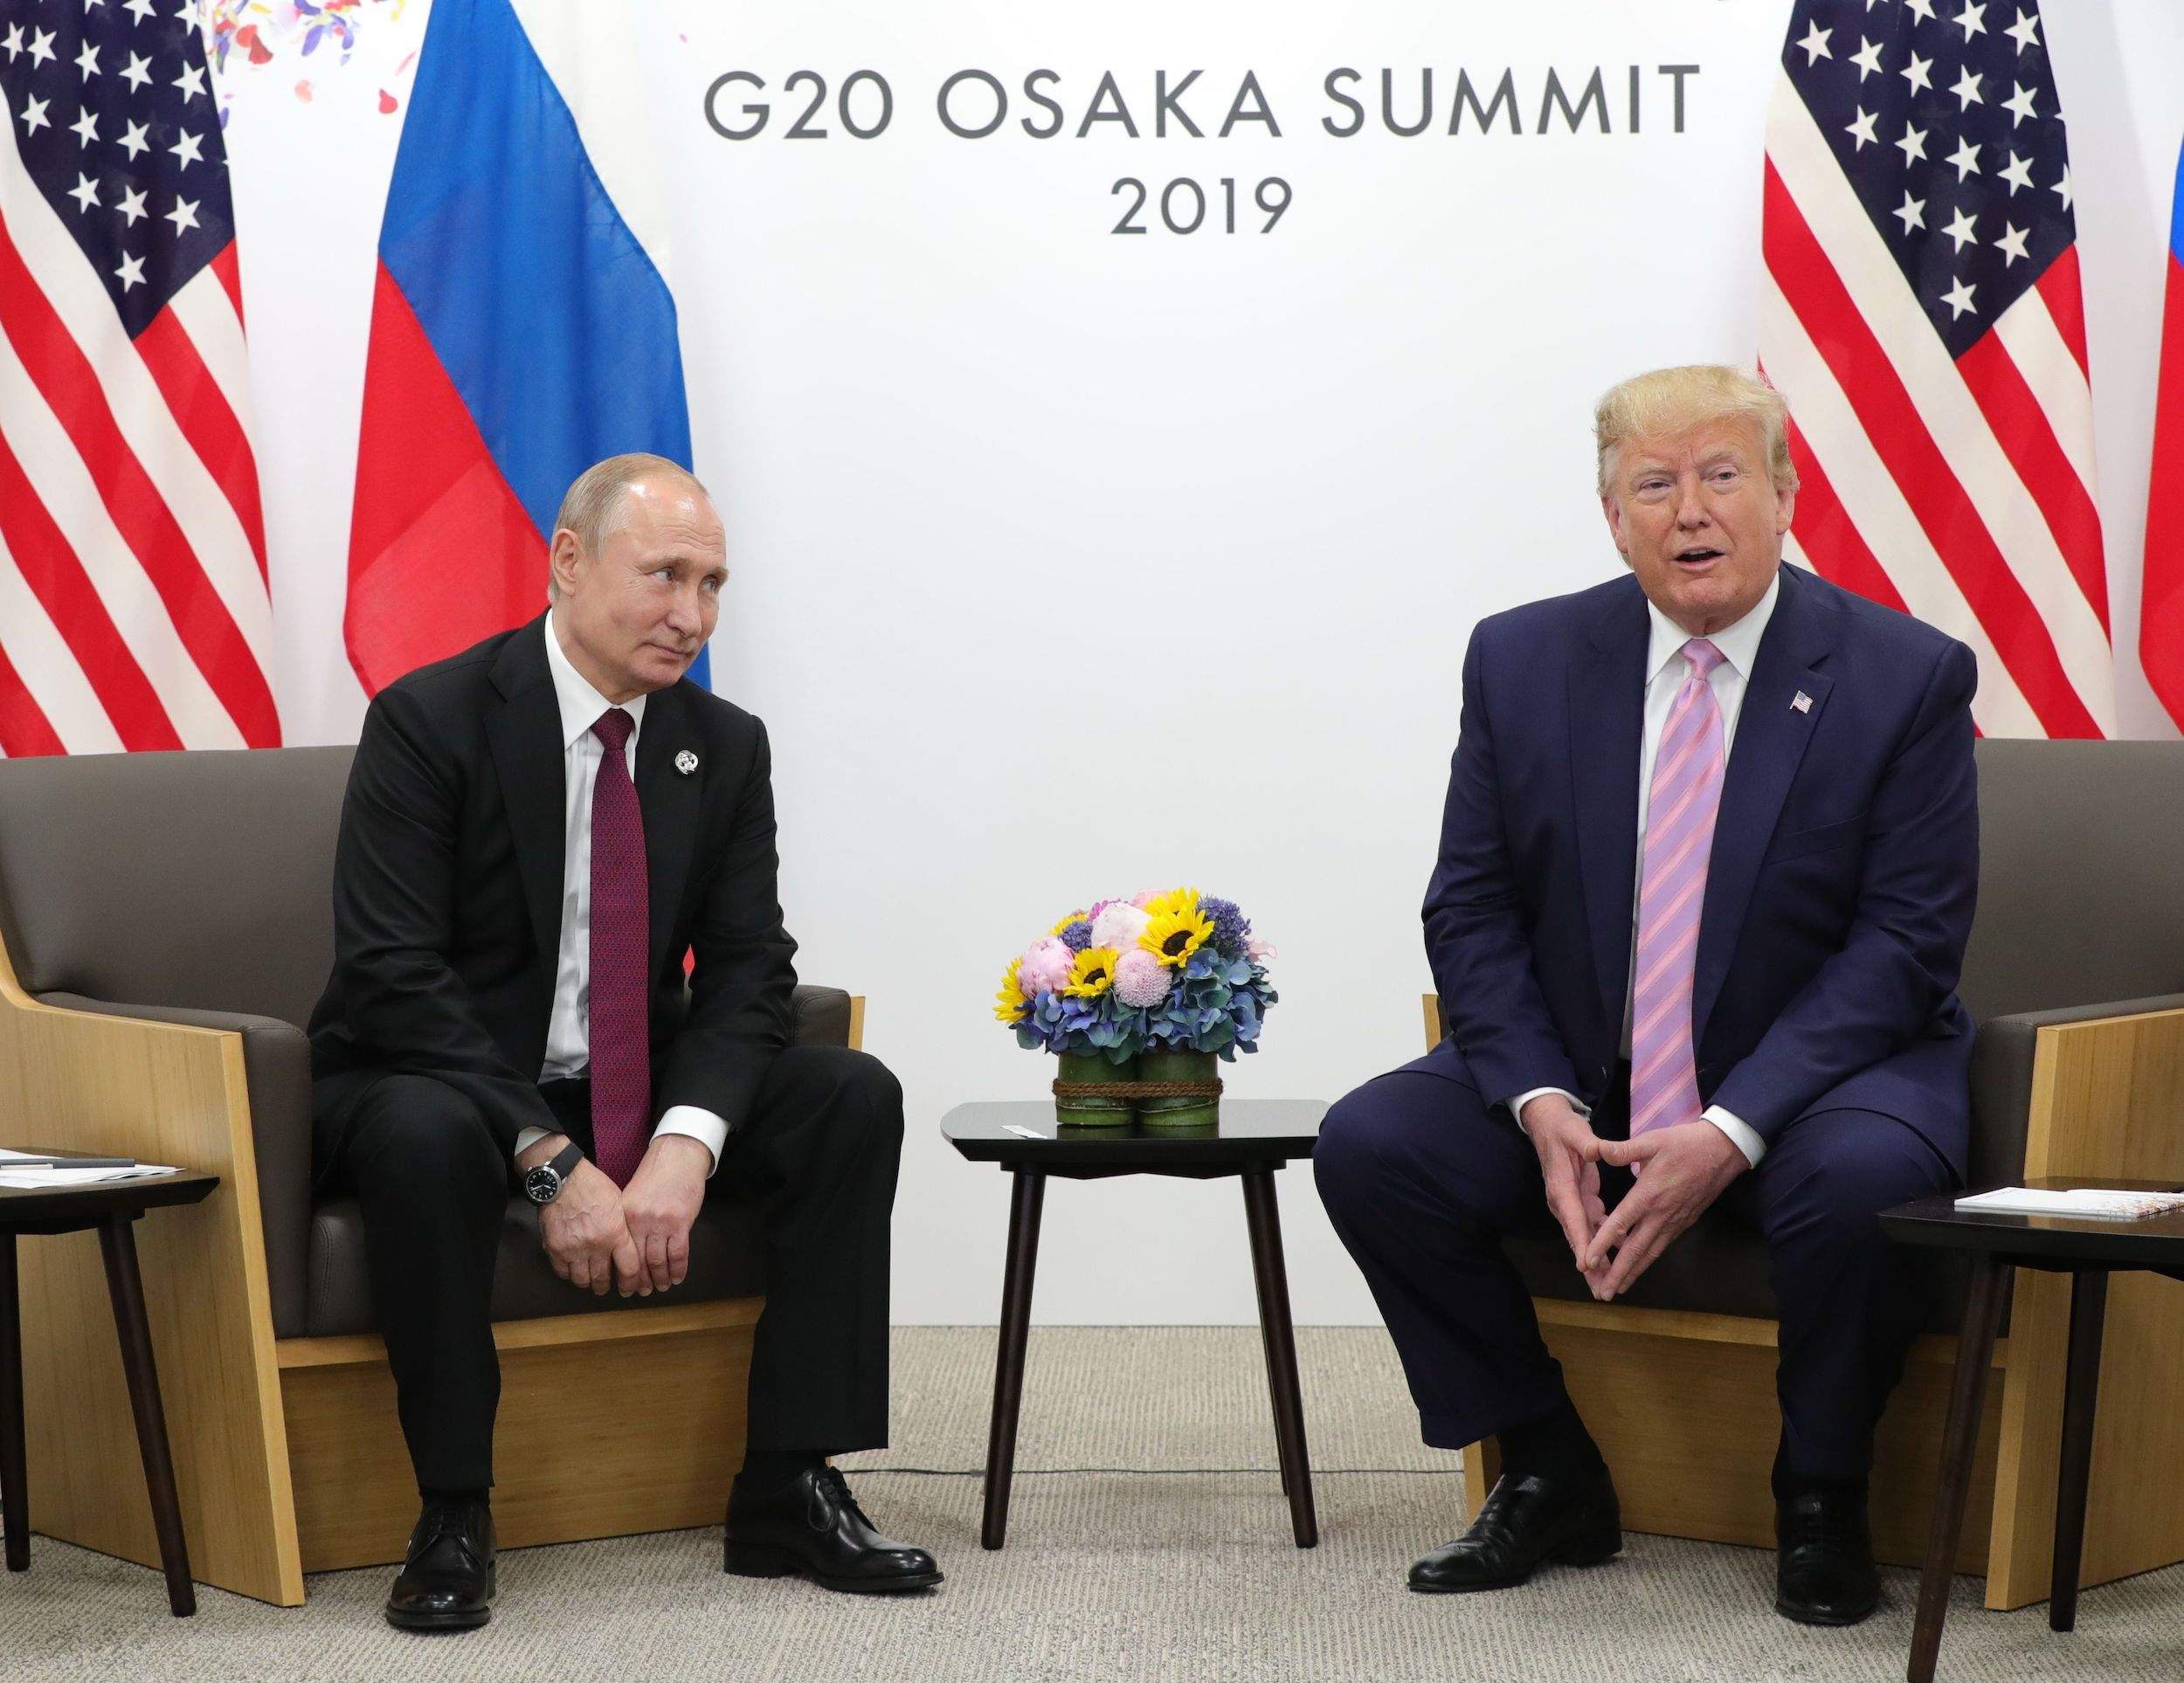 Russian President Vladimir Putin and US President Donald Trump hold a meeting on the sidelines of the G20 summit in Osaka on June 28, 2019.